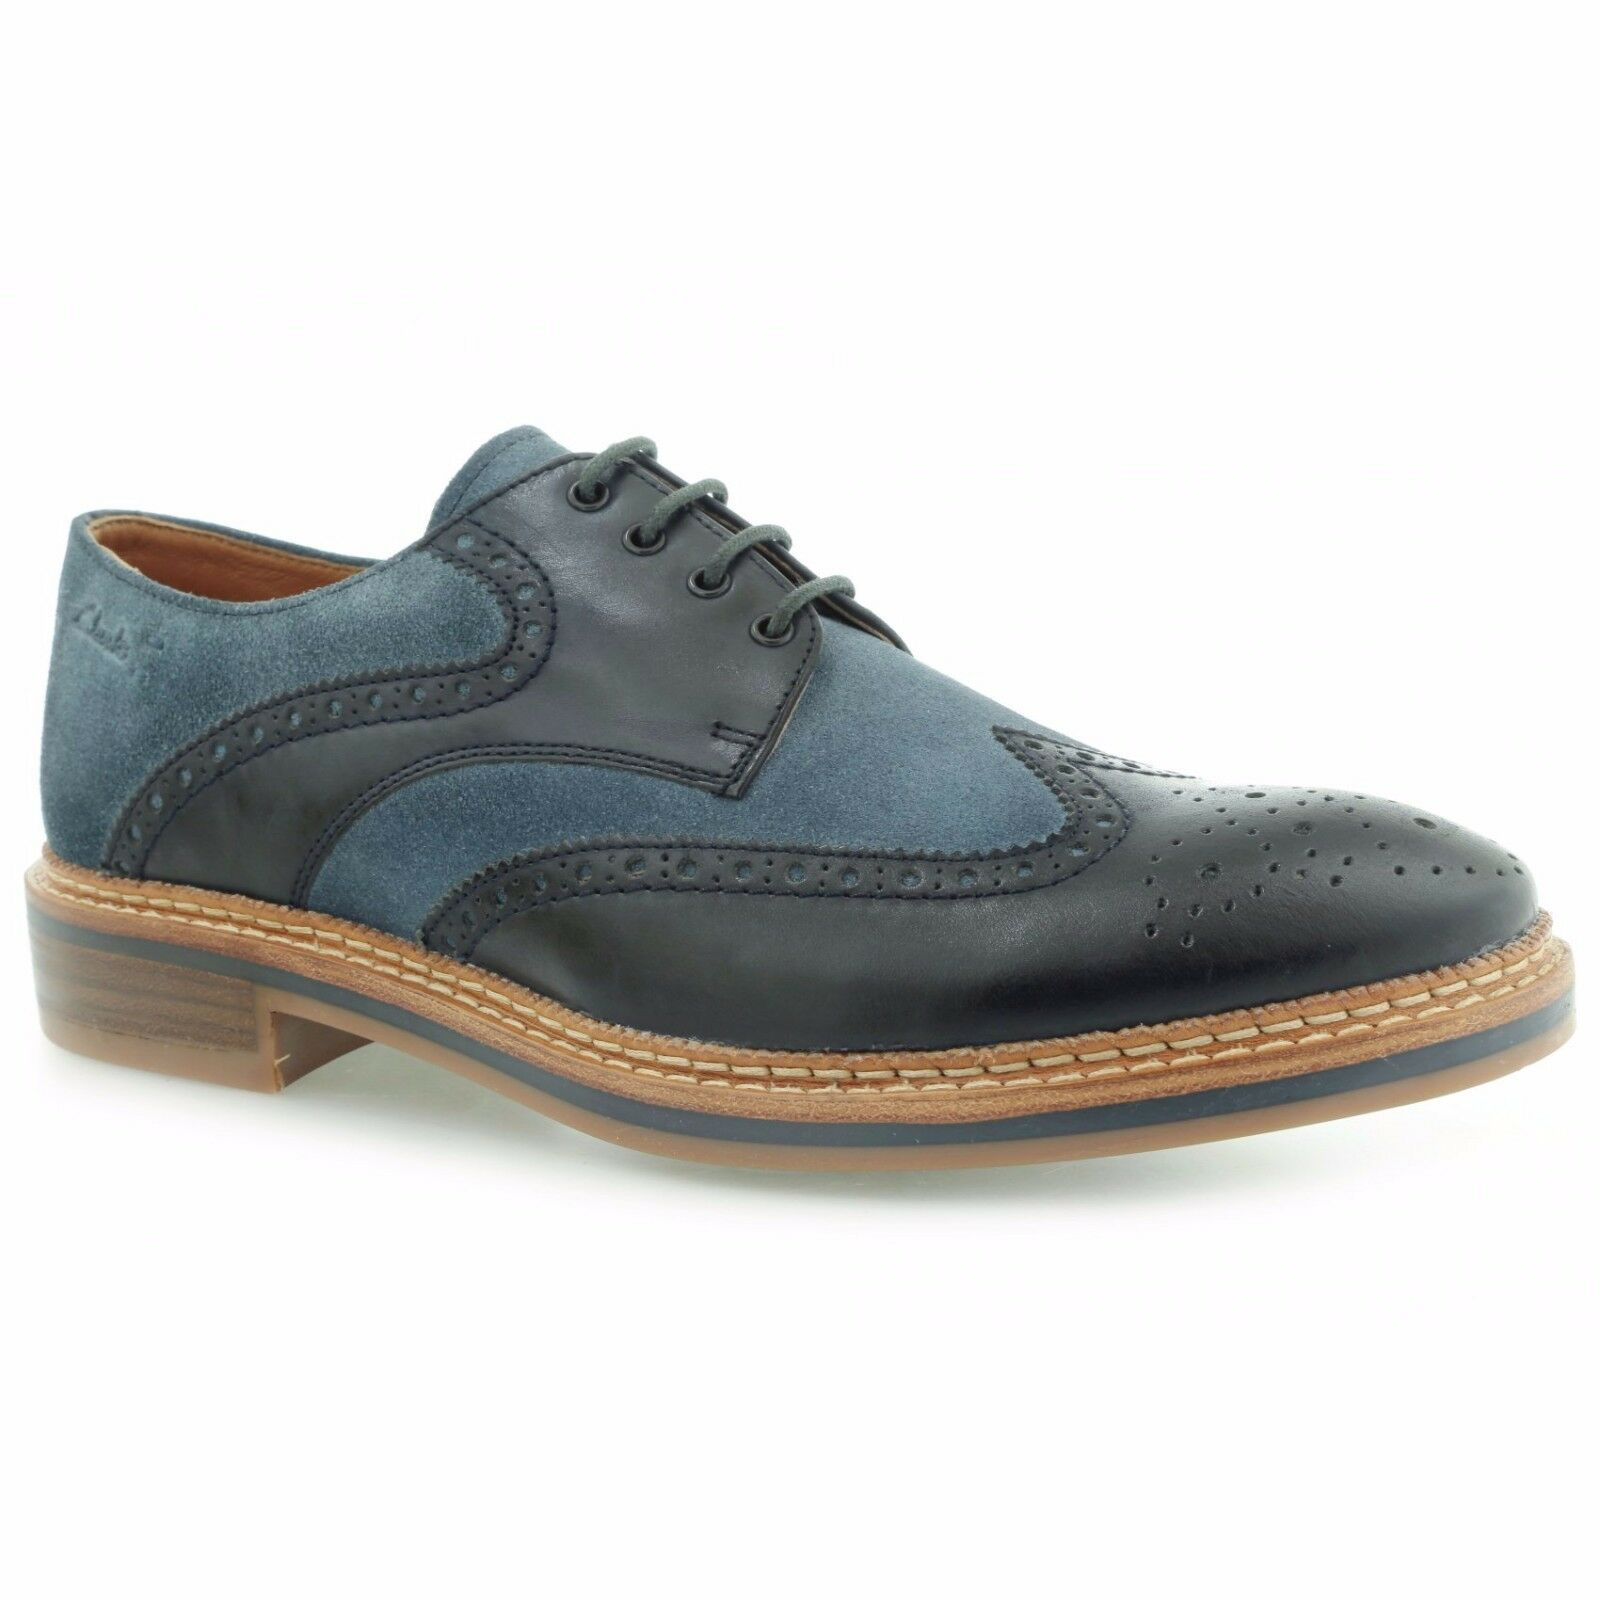 Clarks Mens Grimsby Limit bluee Leather & Suede Brogue shoes, UK 7 - 11